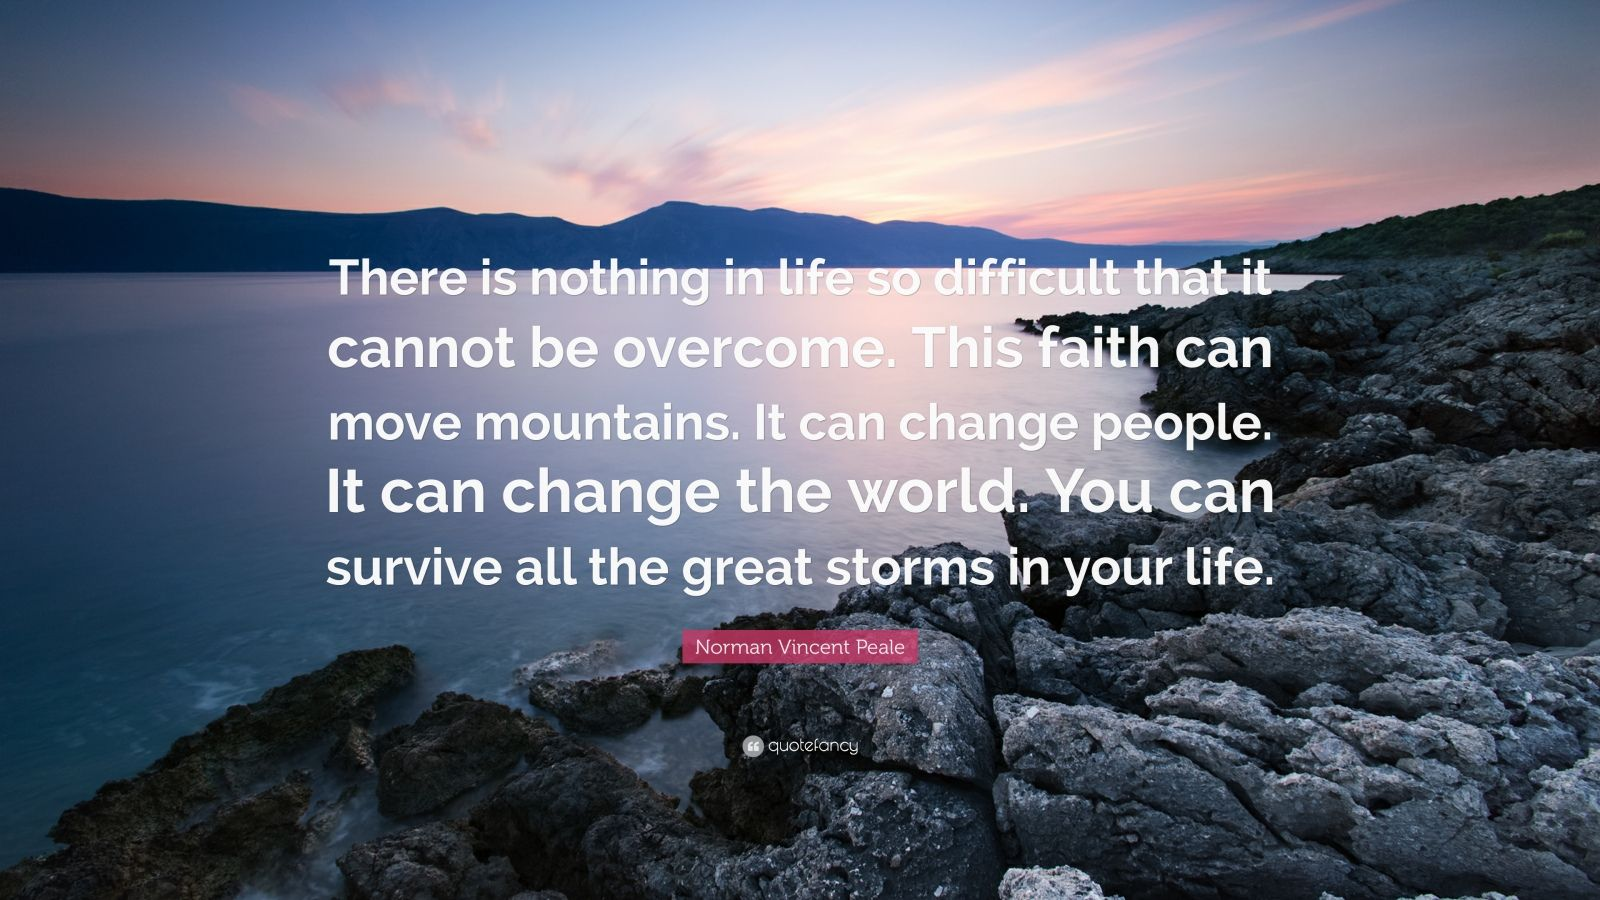 """Norman Vincent Peale Quote: """"There is nothing in life so difficult that it cannot be overcome. This faith can move mountains. It can change people. It can change the world. You can survive all the great storms in your life."""""""